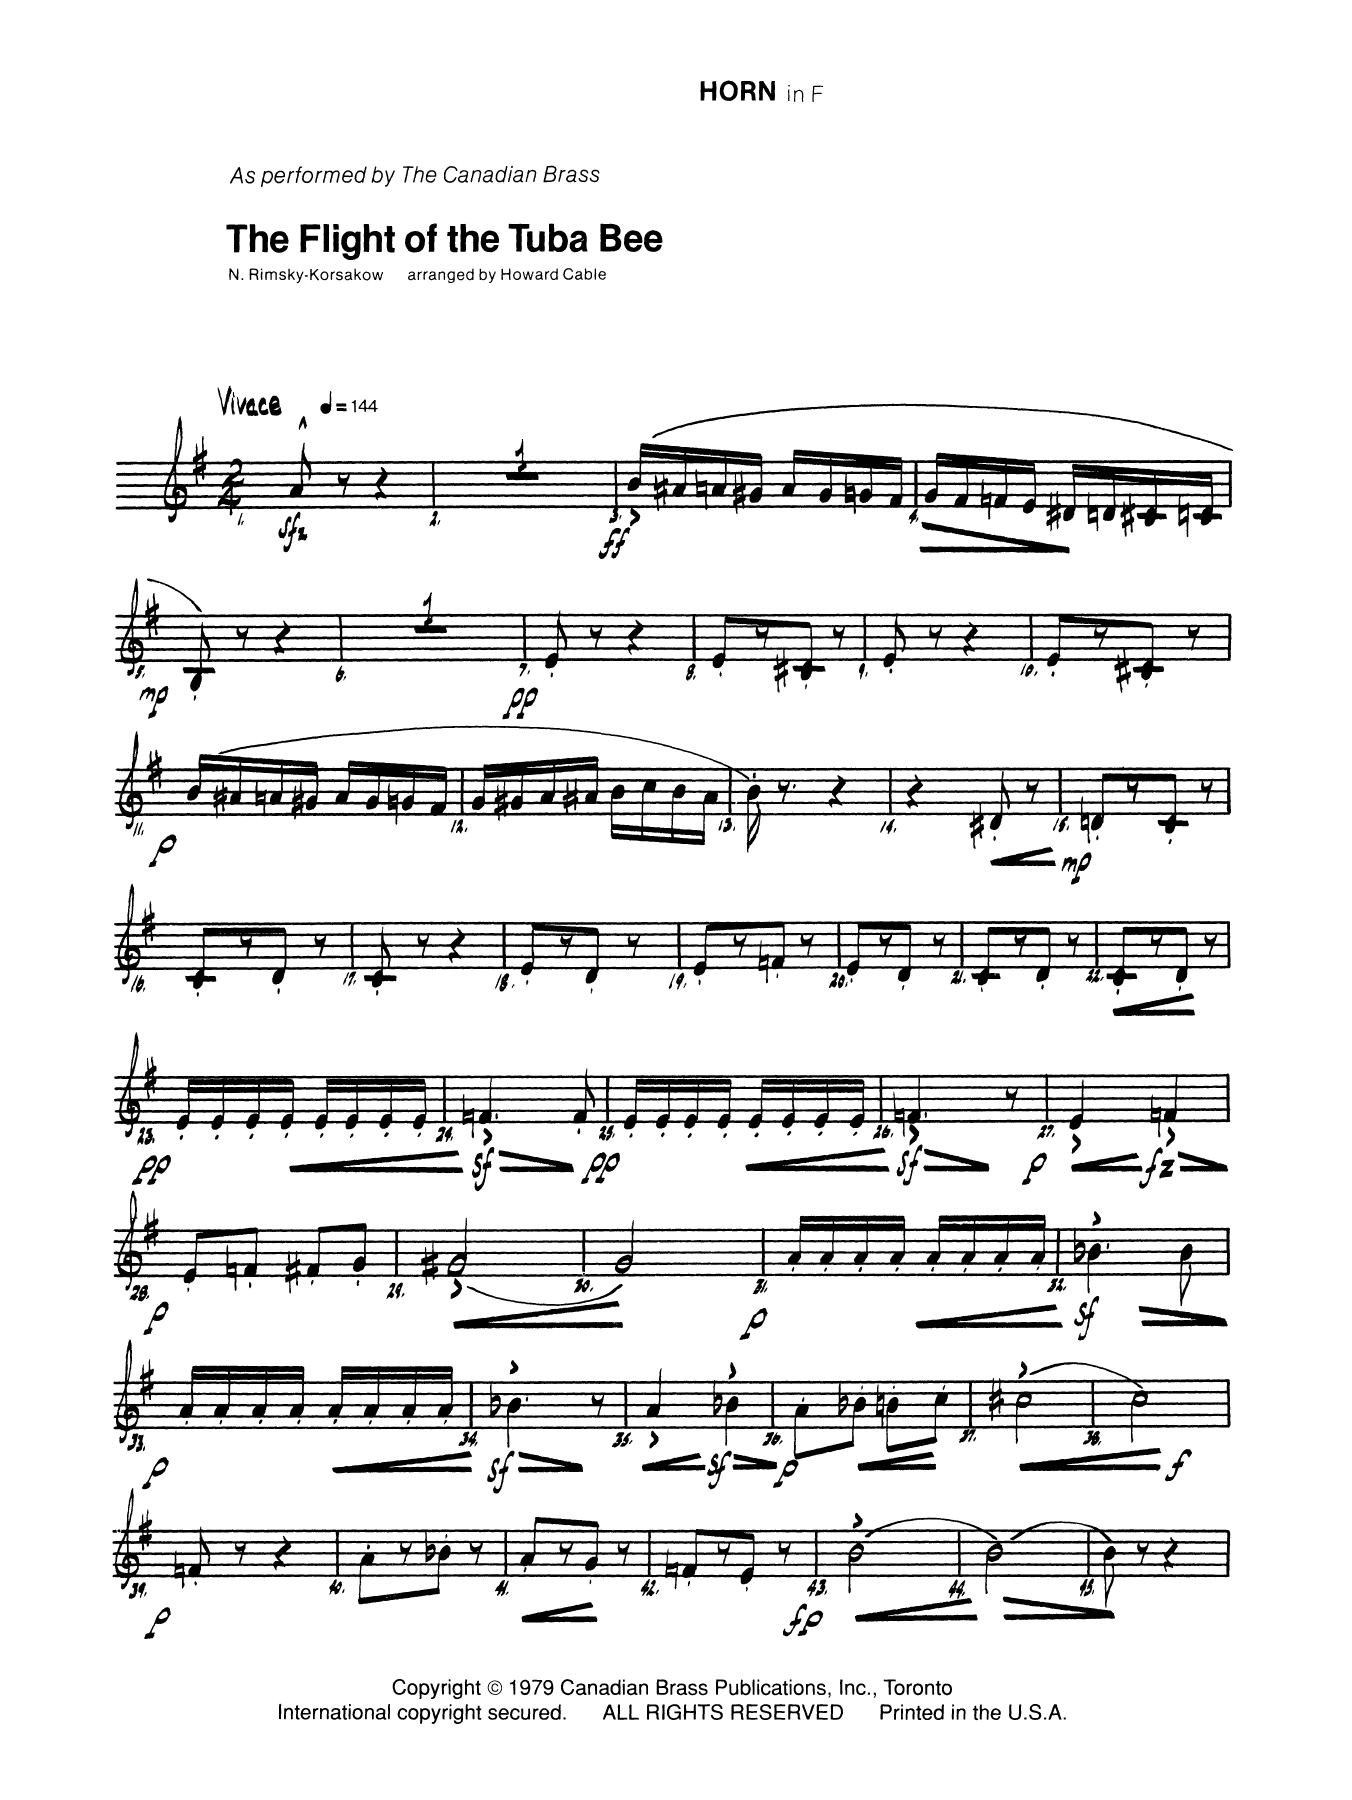 The Flight of the Tuba Bee - Horn in F Sheet Music